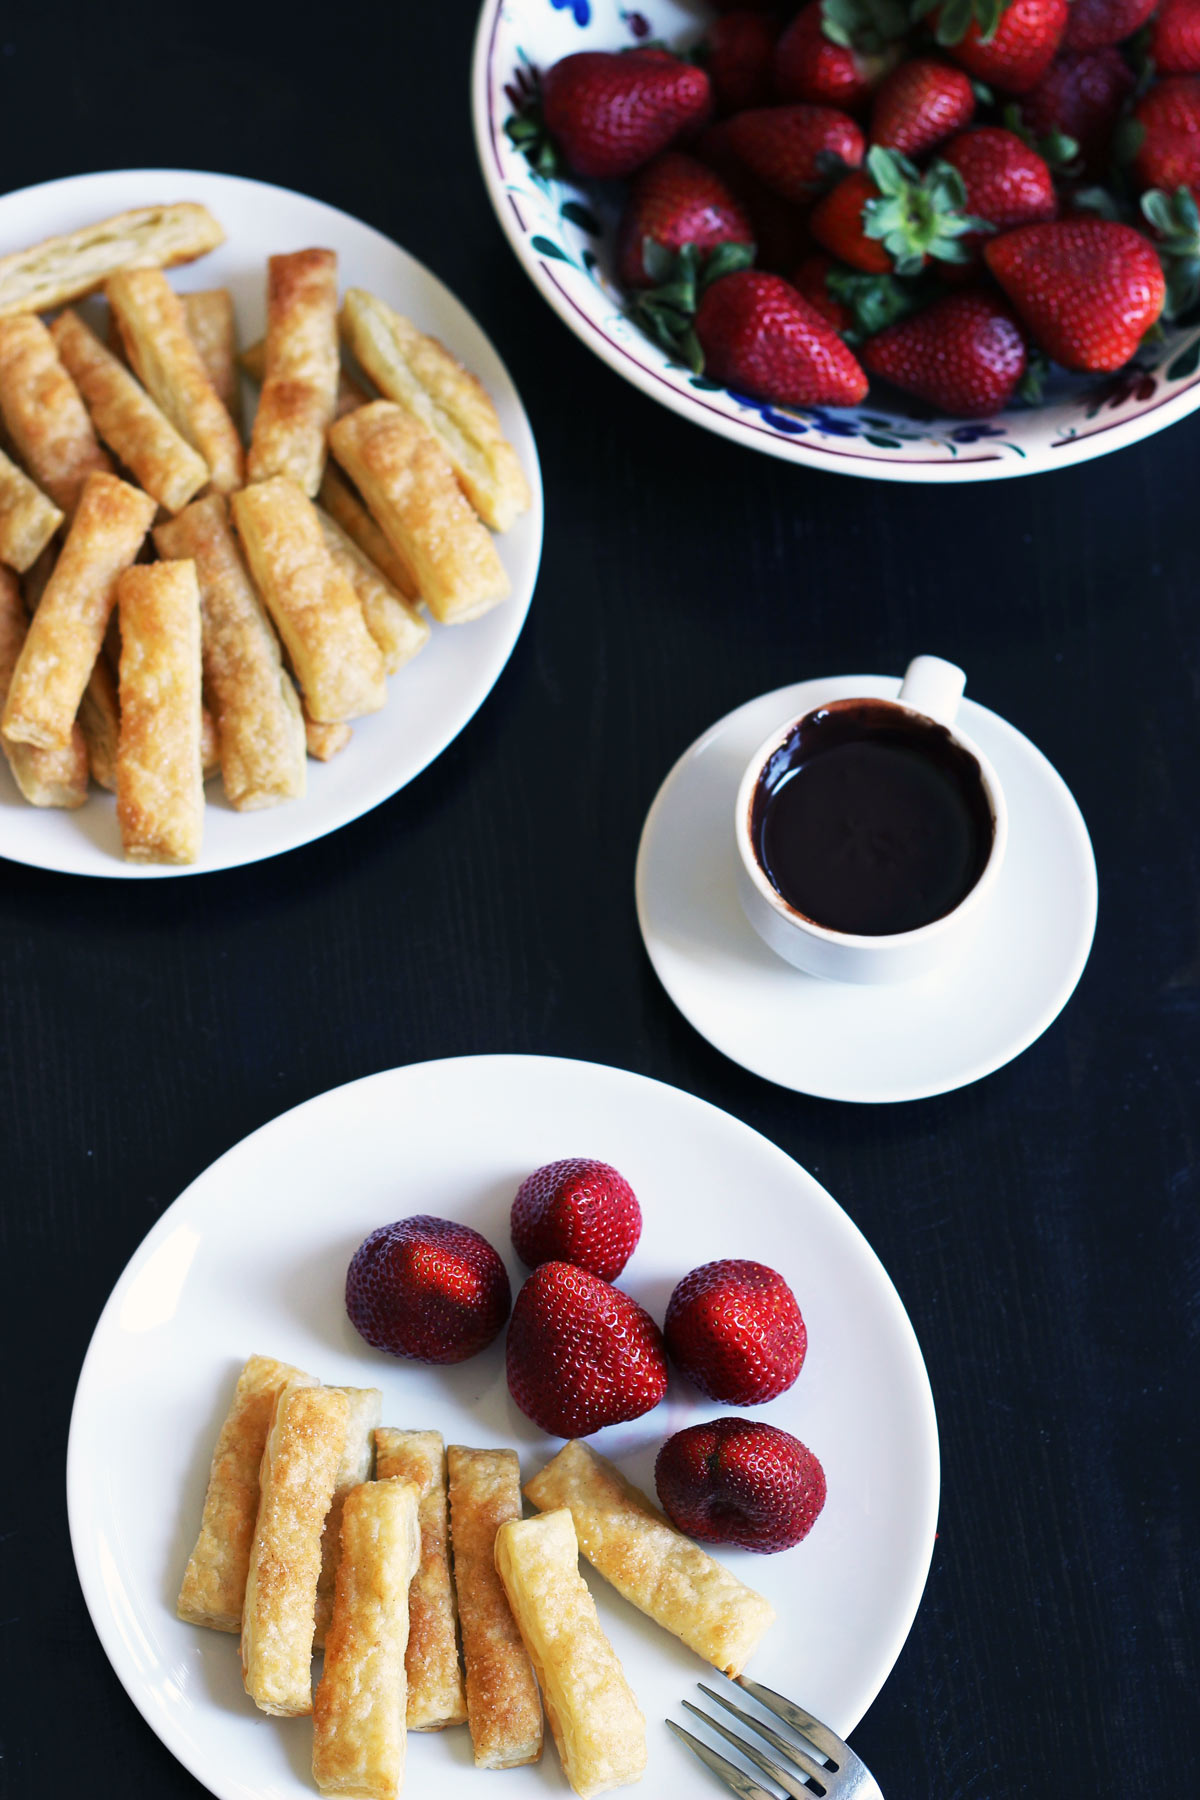 plates of puffs and berries with cup of chocolate fondue